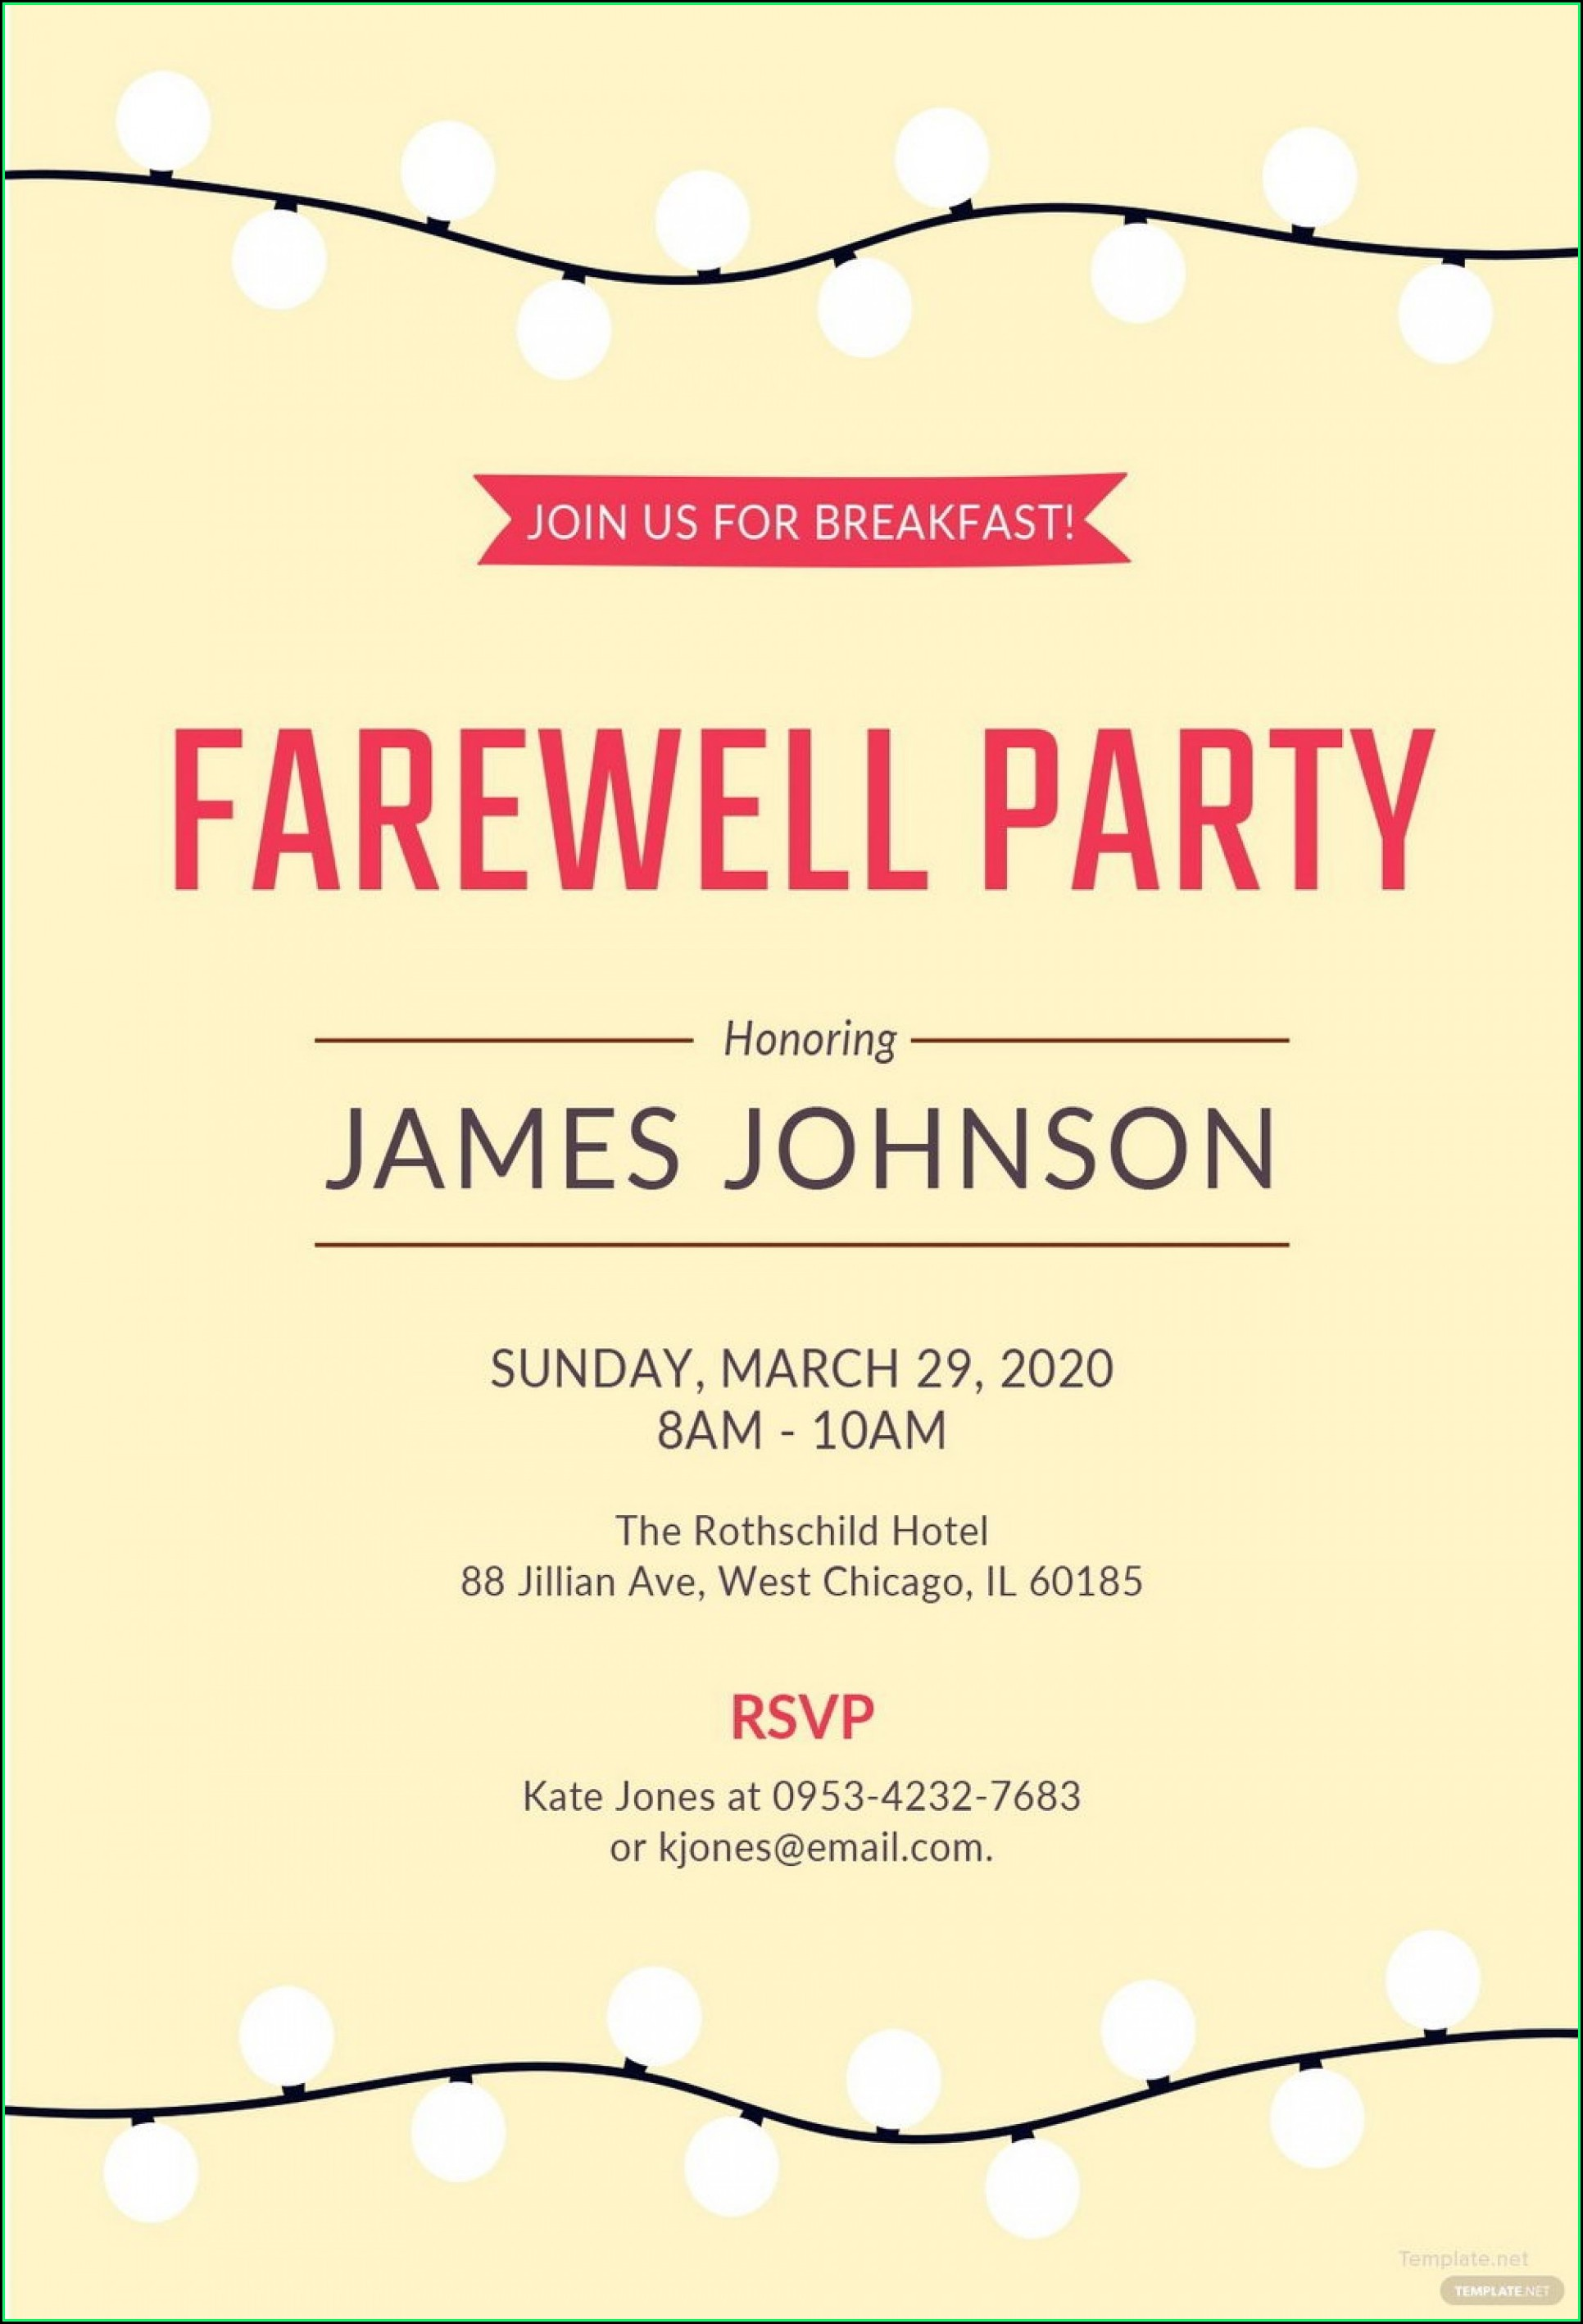 Farewell Party Invitation Card Template Free